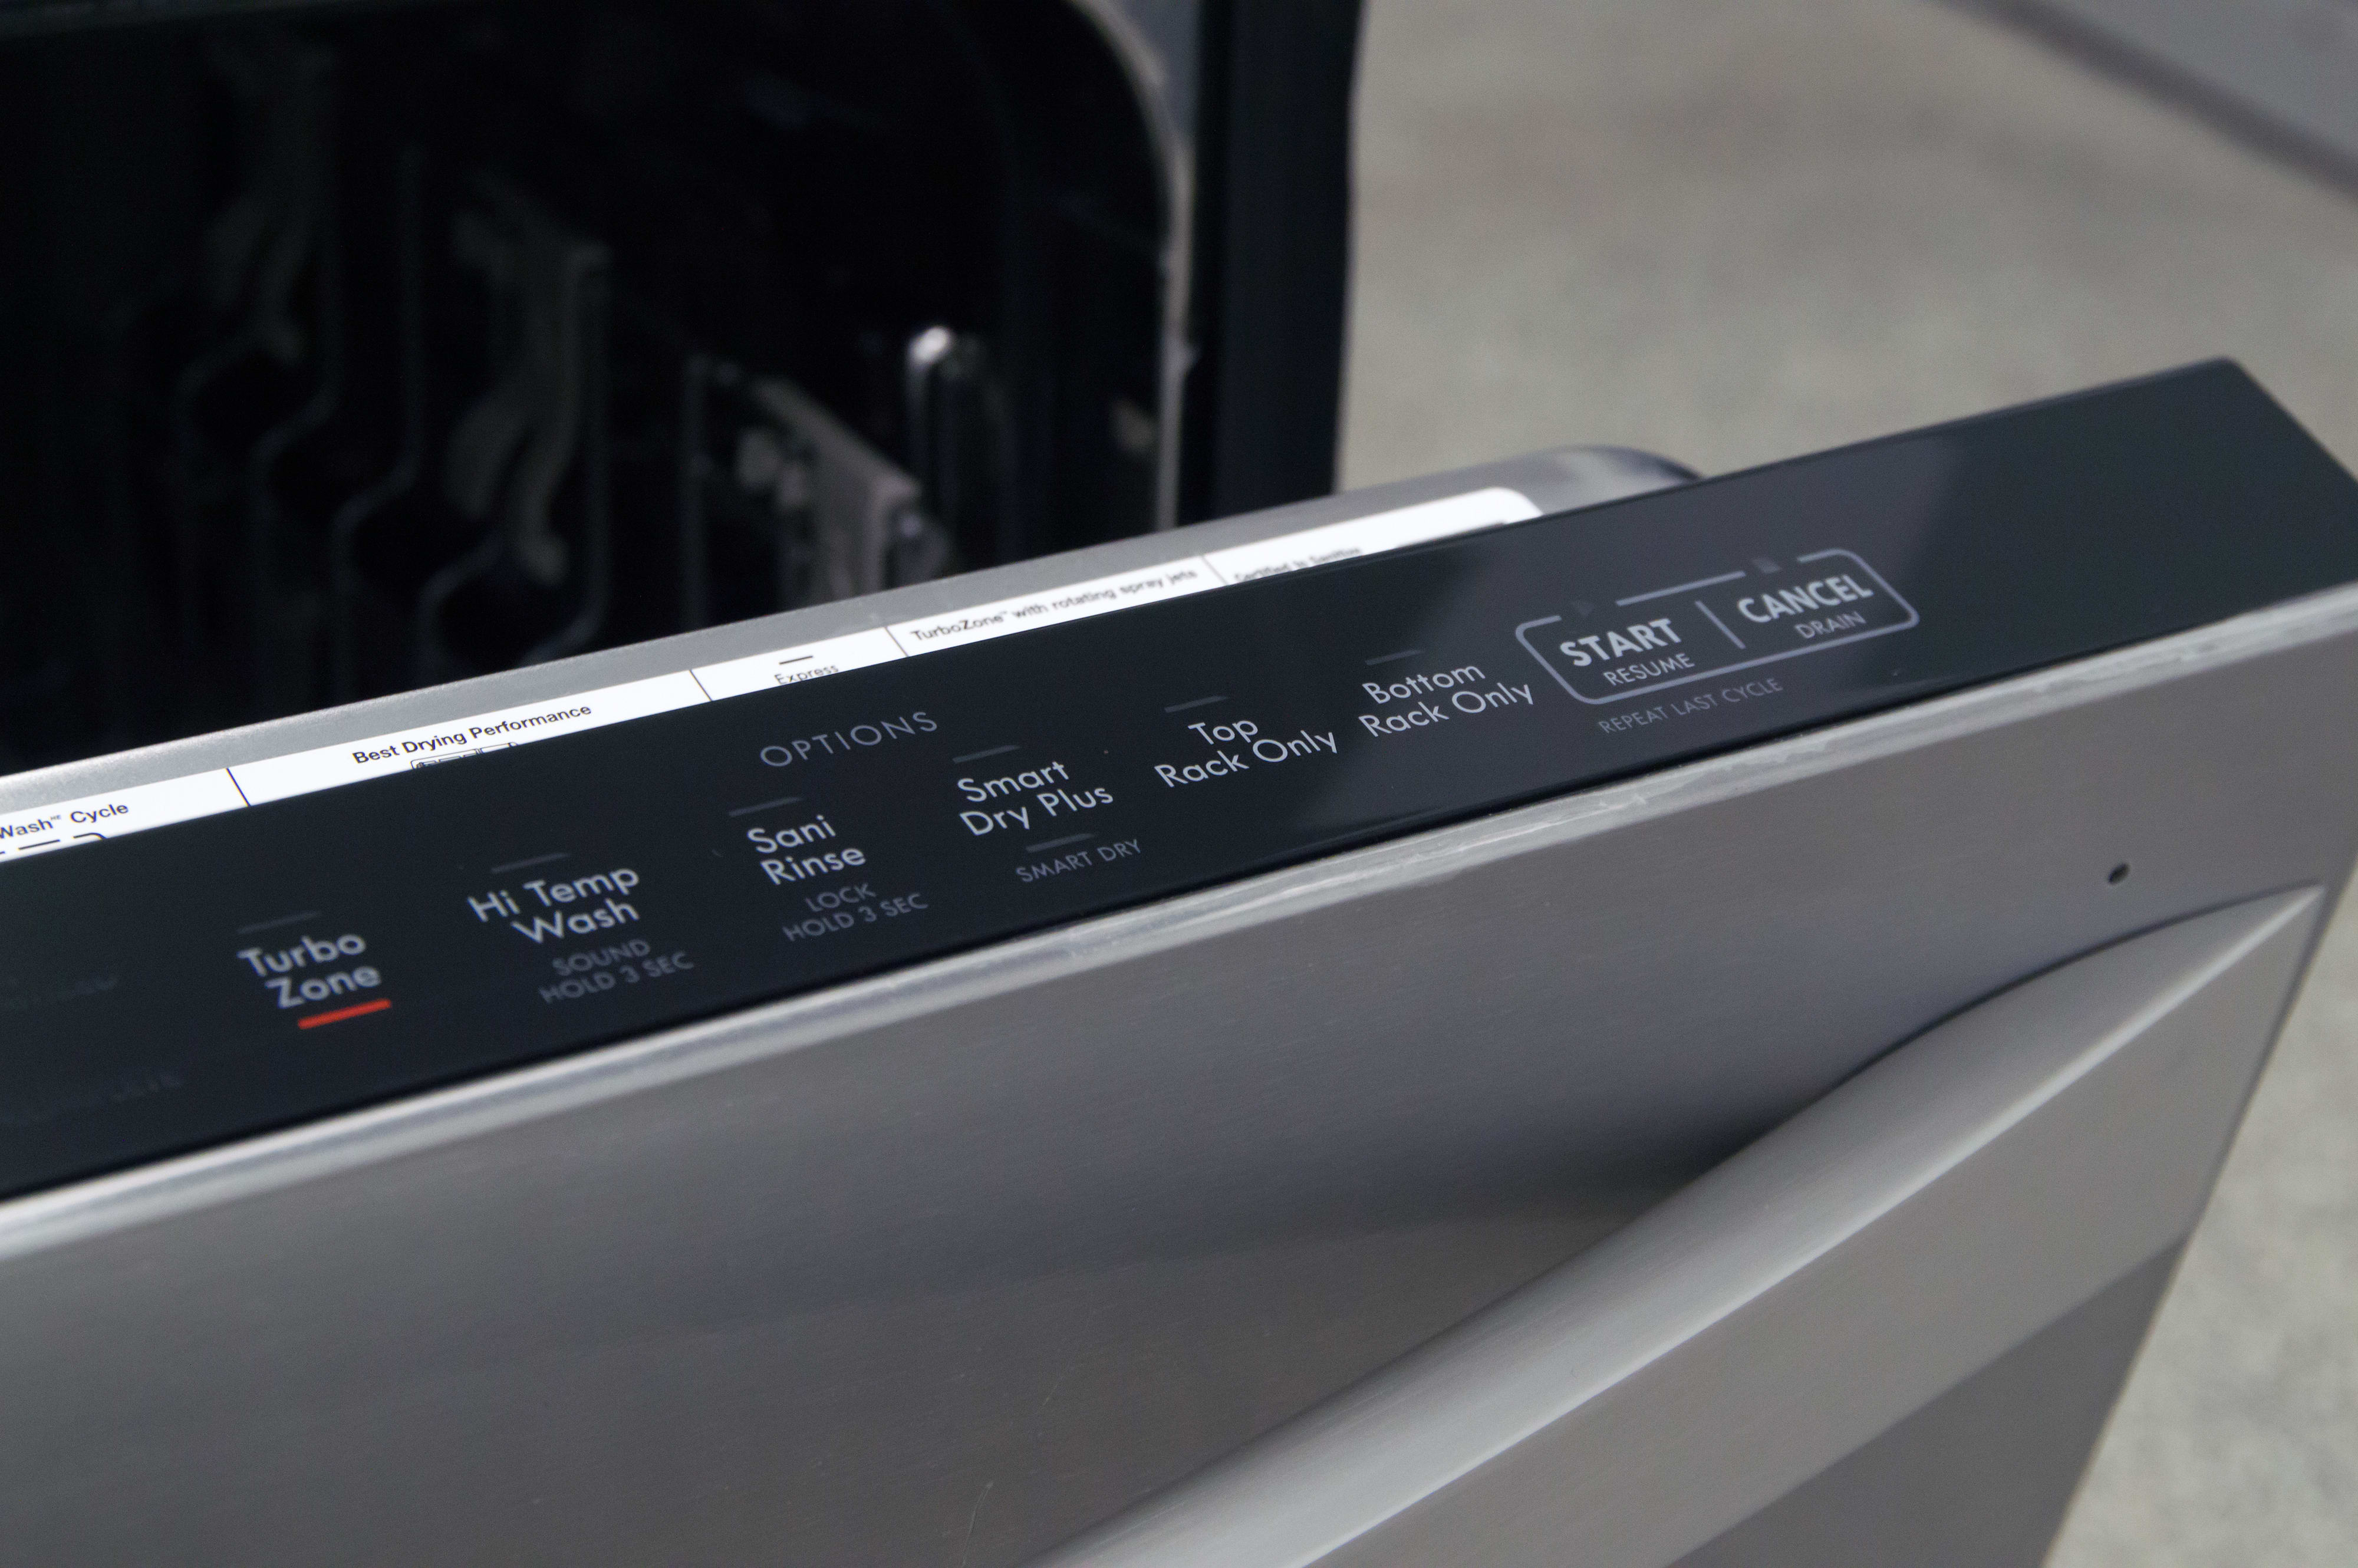 Right side of the control panel, showing extra wash options